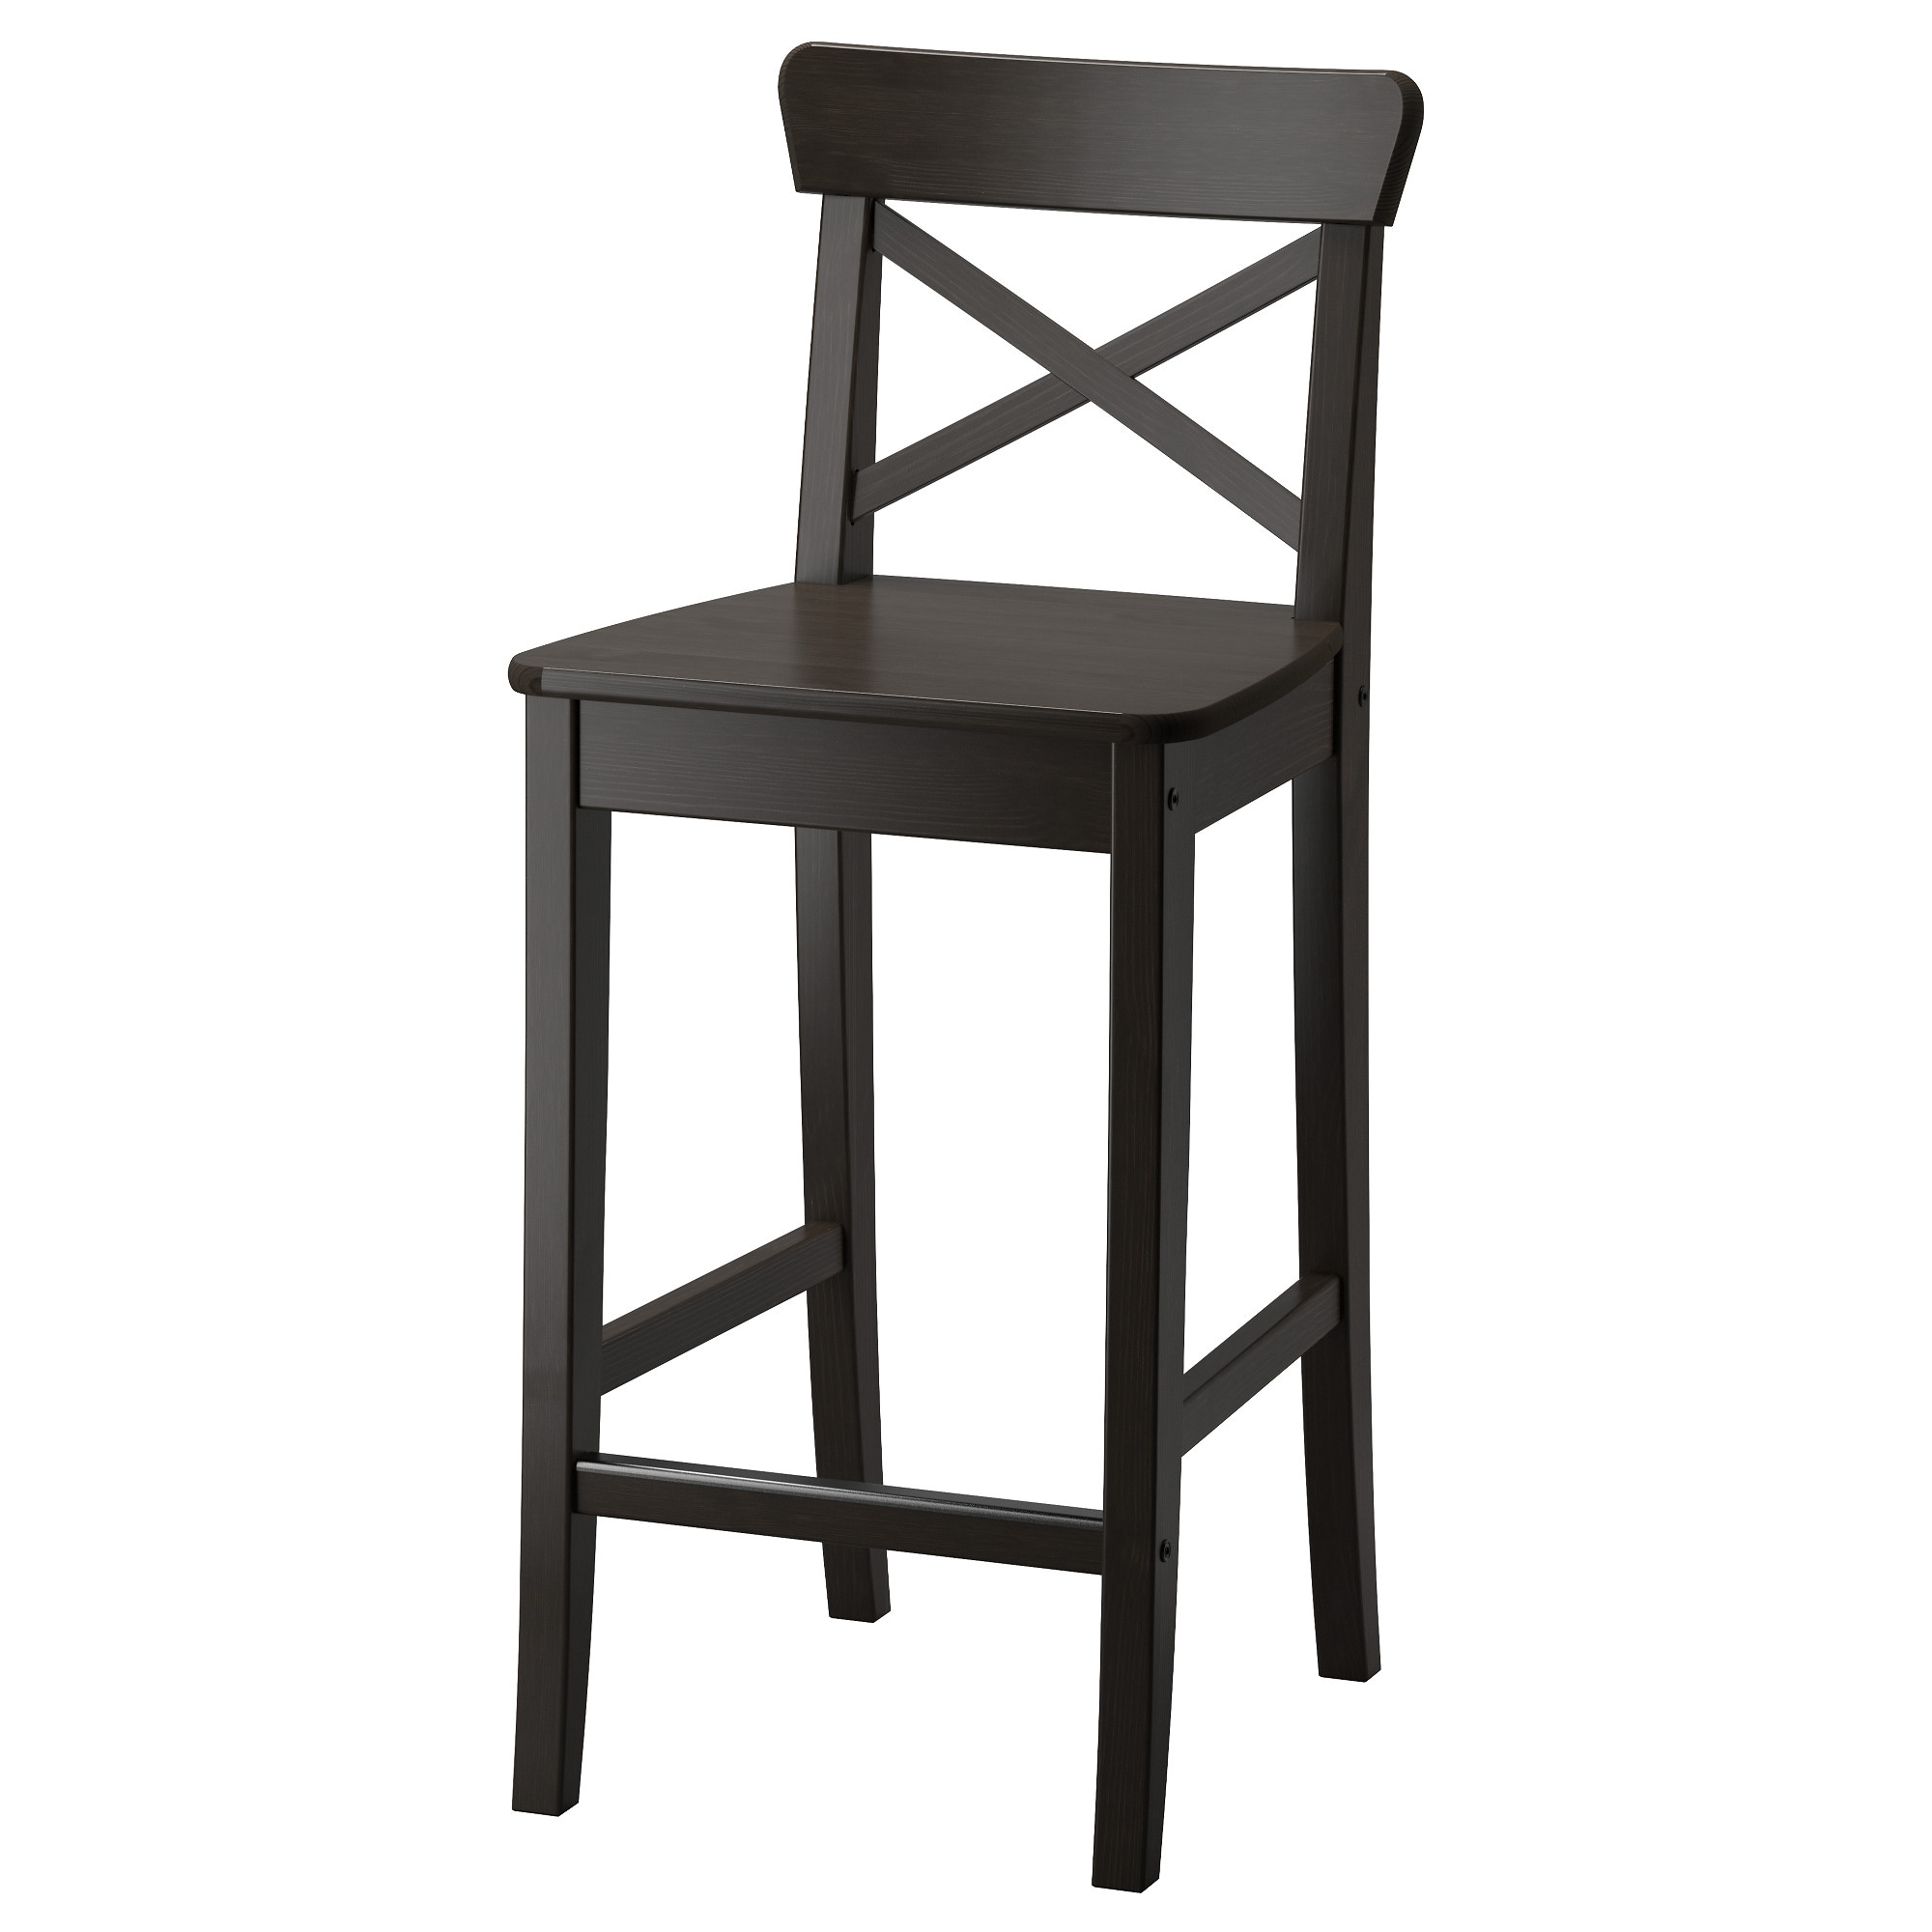 ingolf bar stool with backrest brownblack tested for 220 lb width